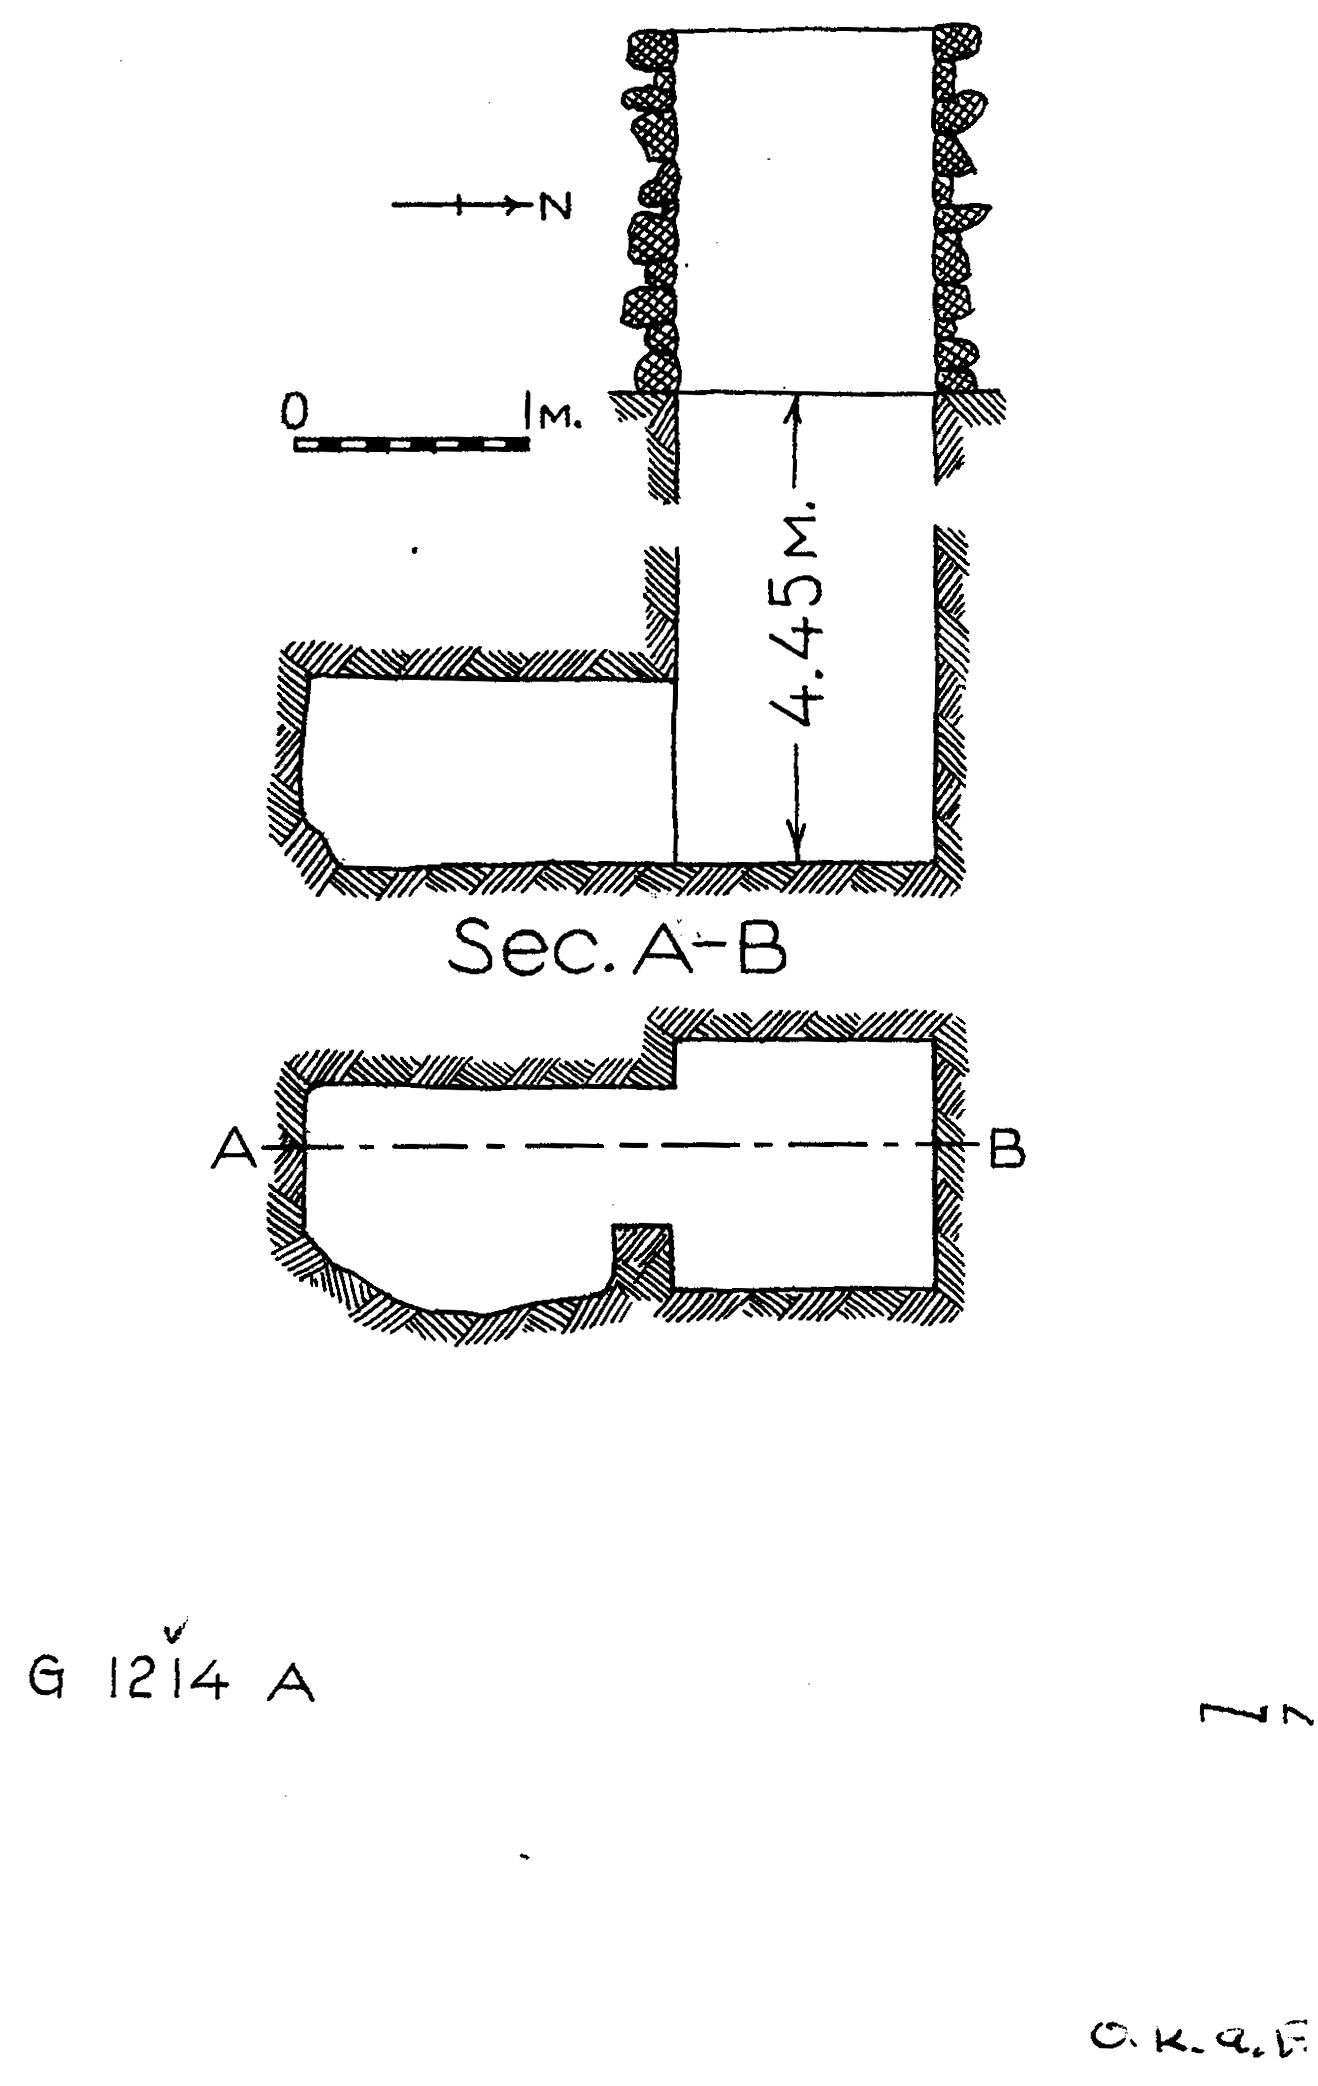 Maps and plans: G 1214, Shaft A